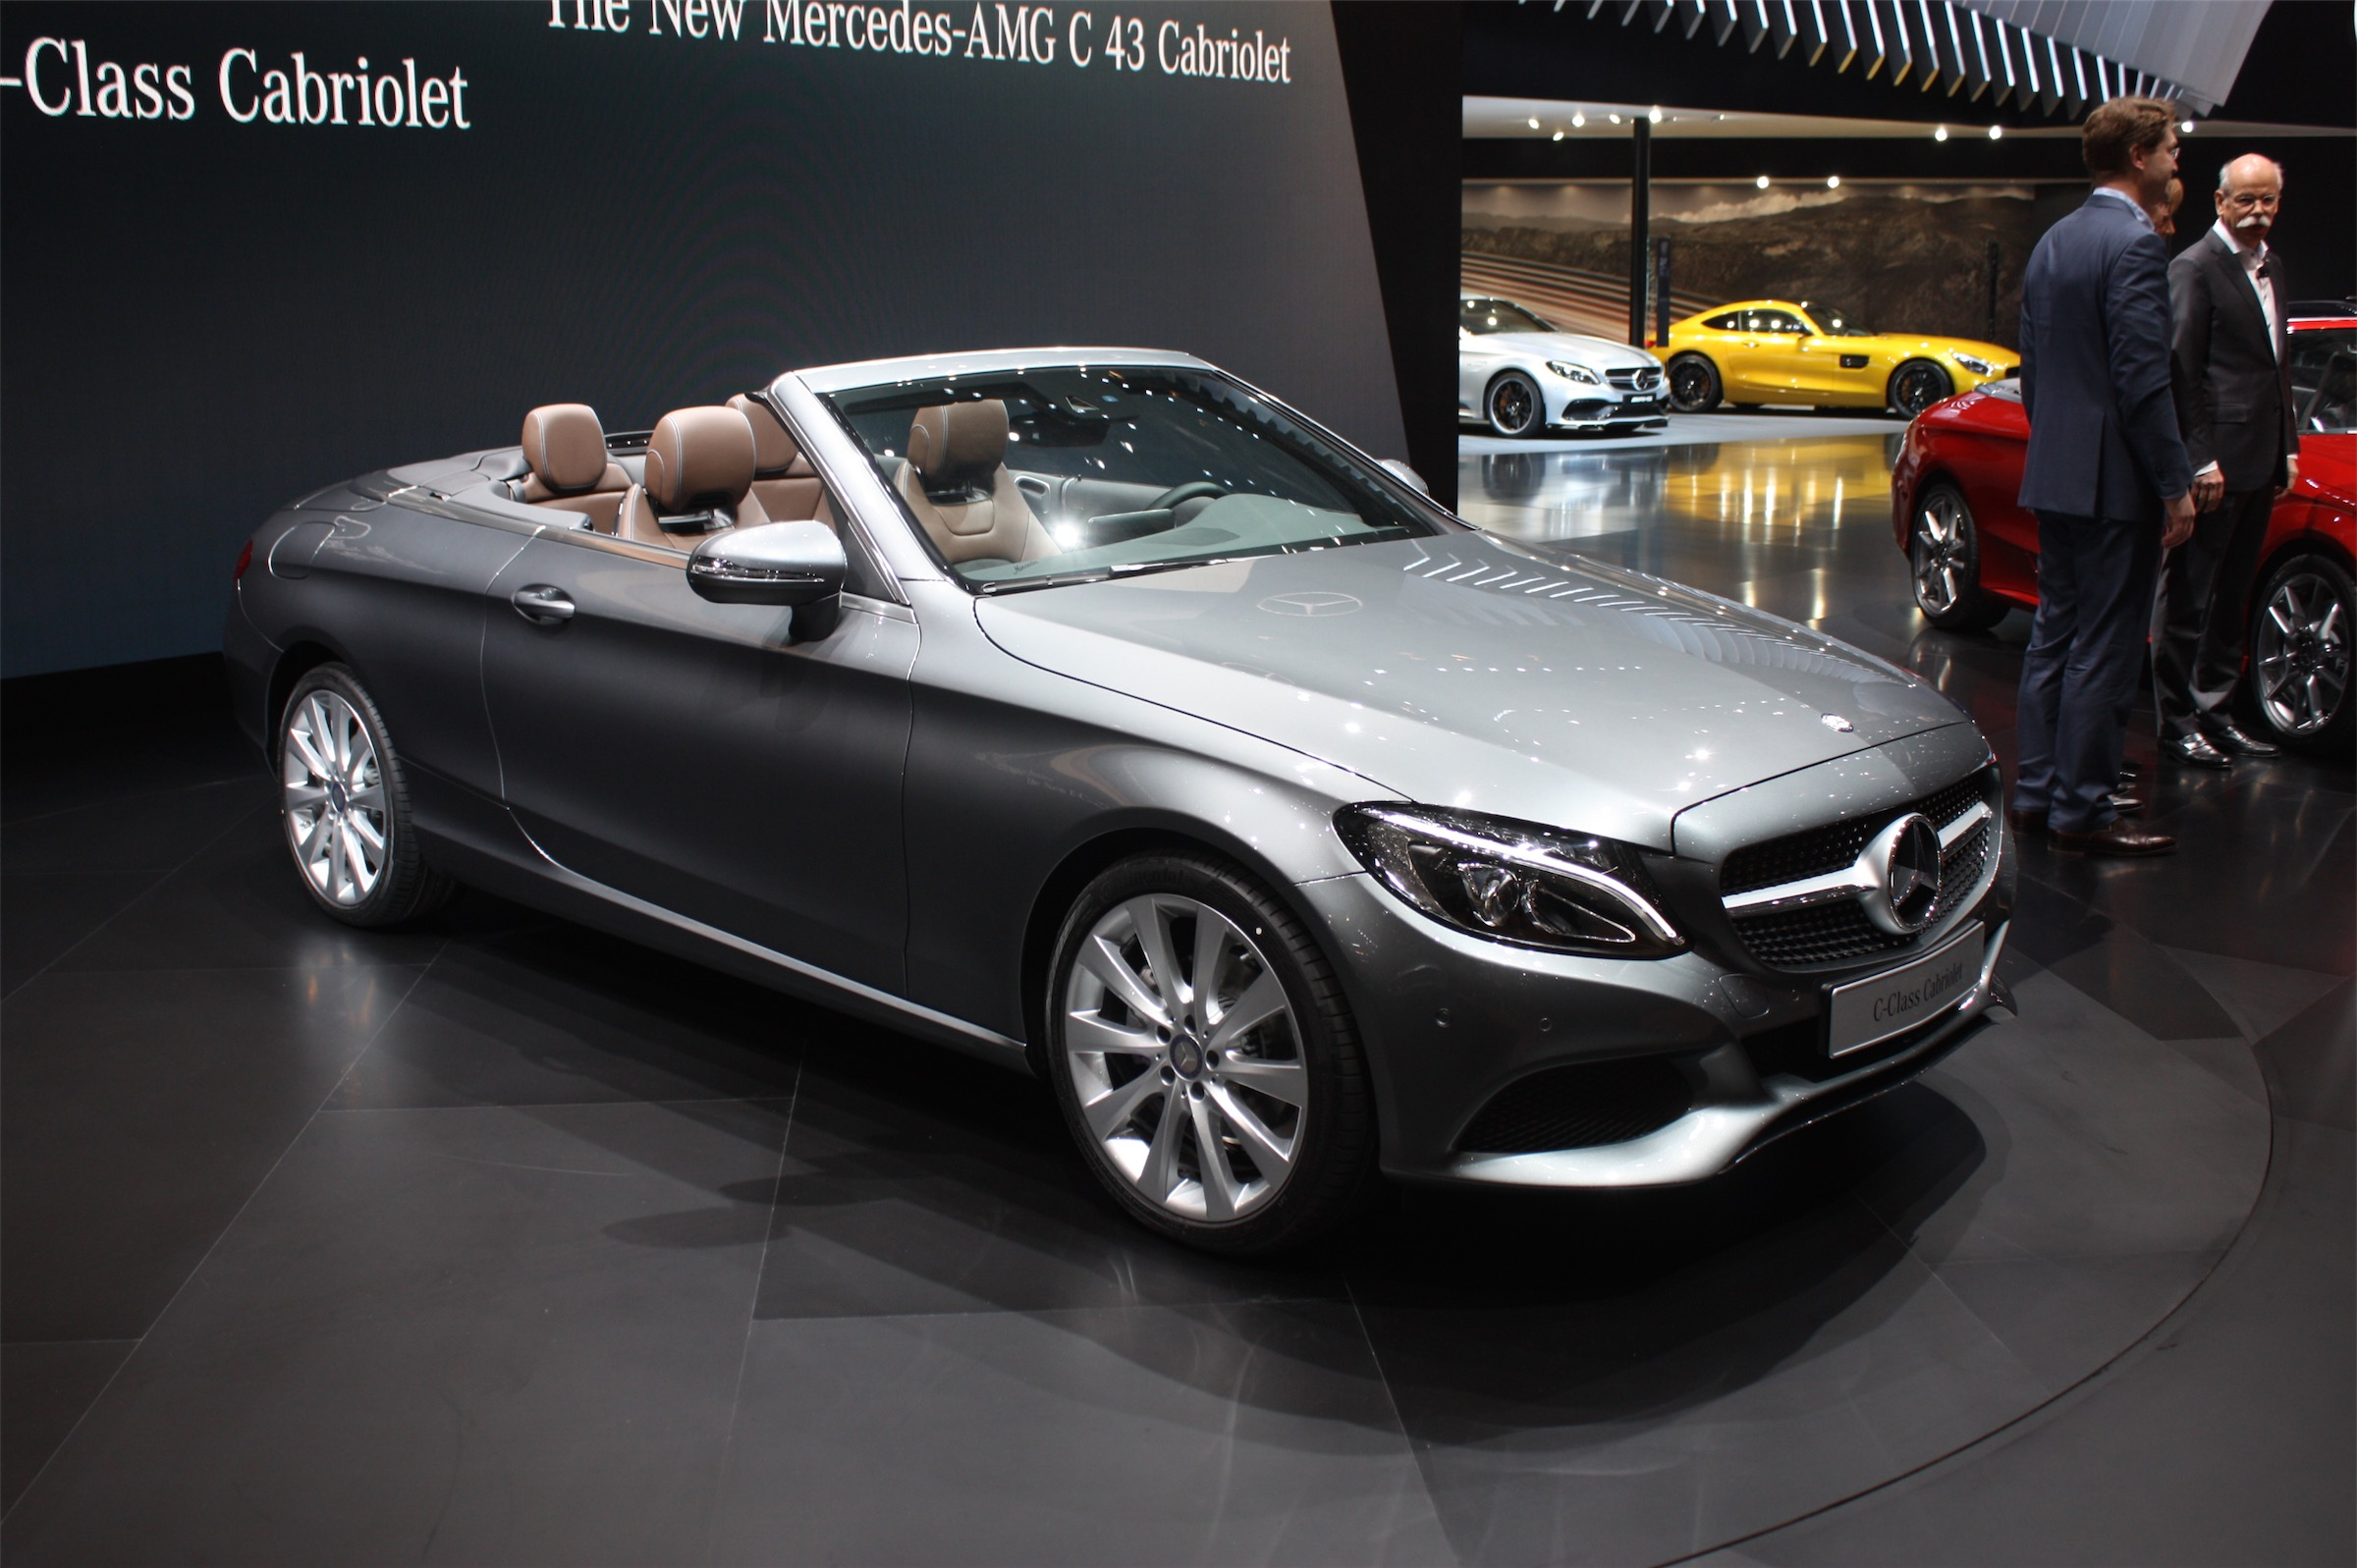 2017 mercedes benz c class convertible release date price for 2017 mercedes benz e350 price